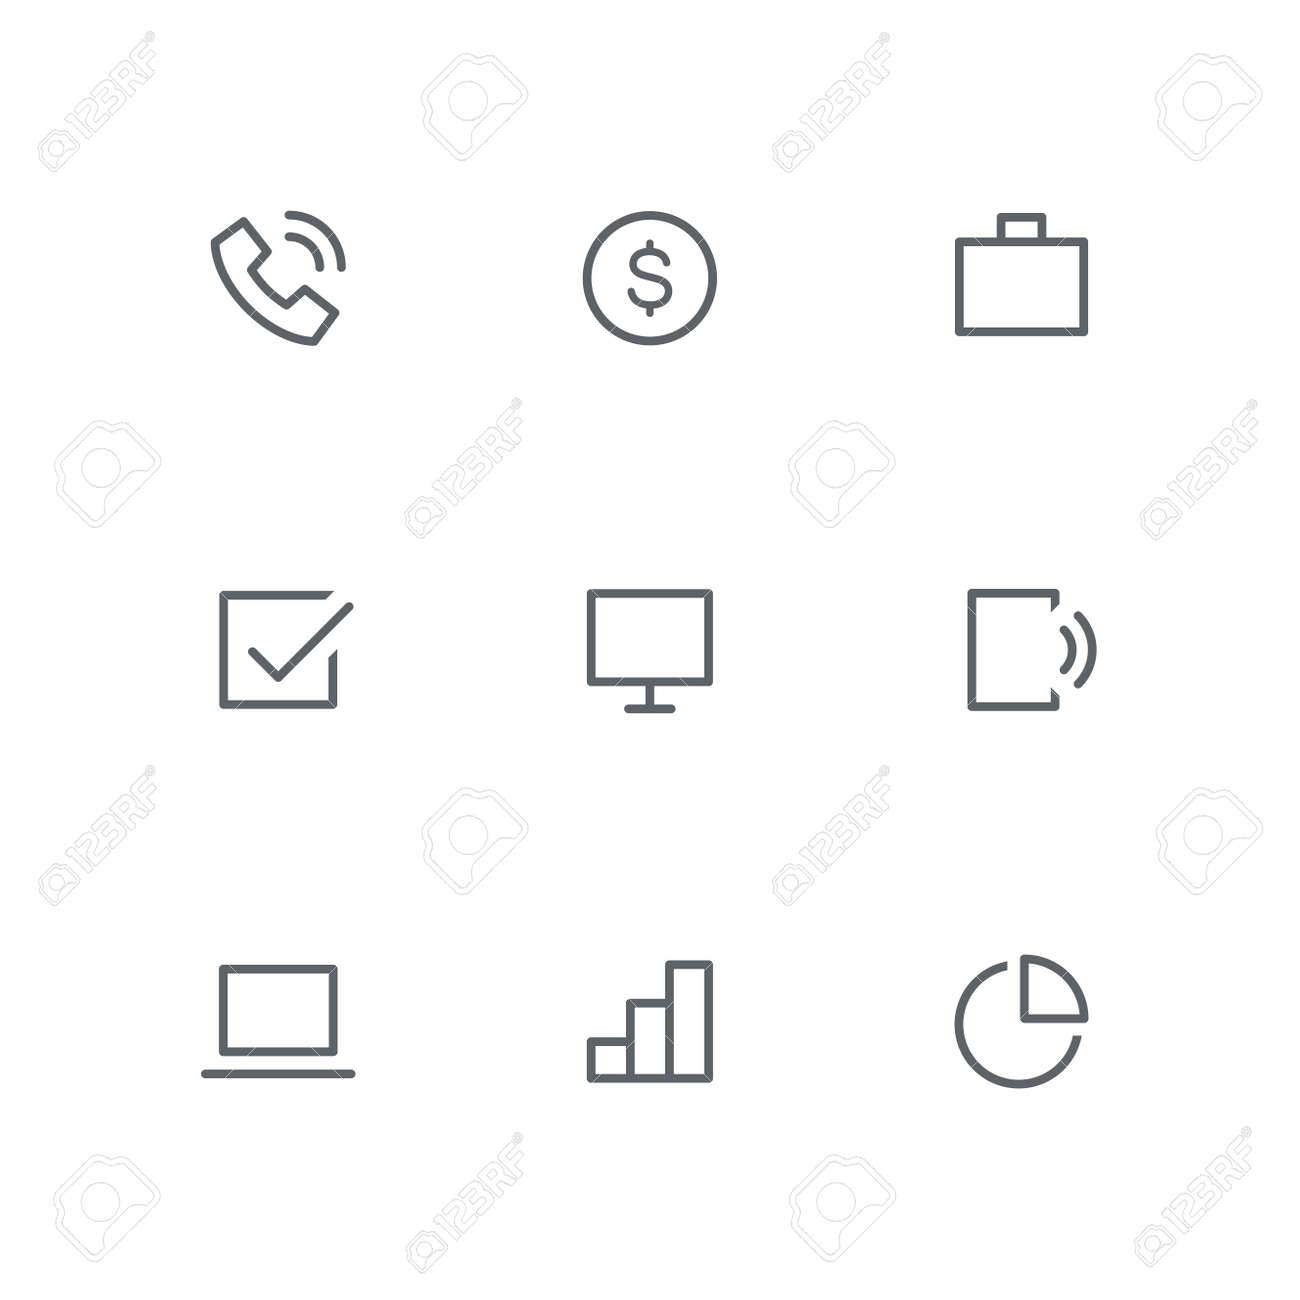 hight resolution of basic outline icon set telephone dollar coin briefcase check mark computer